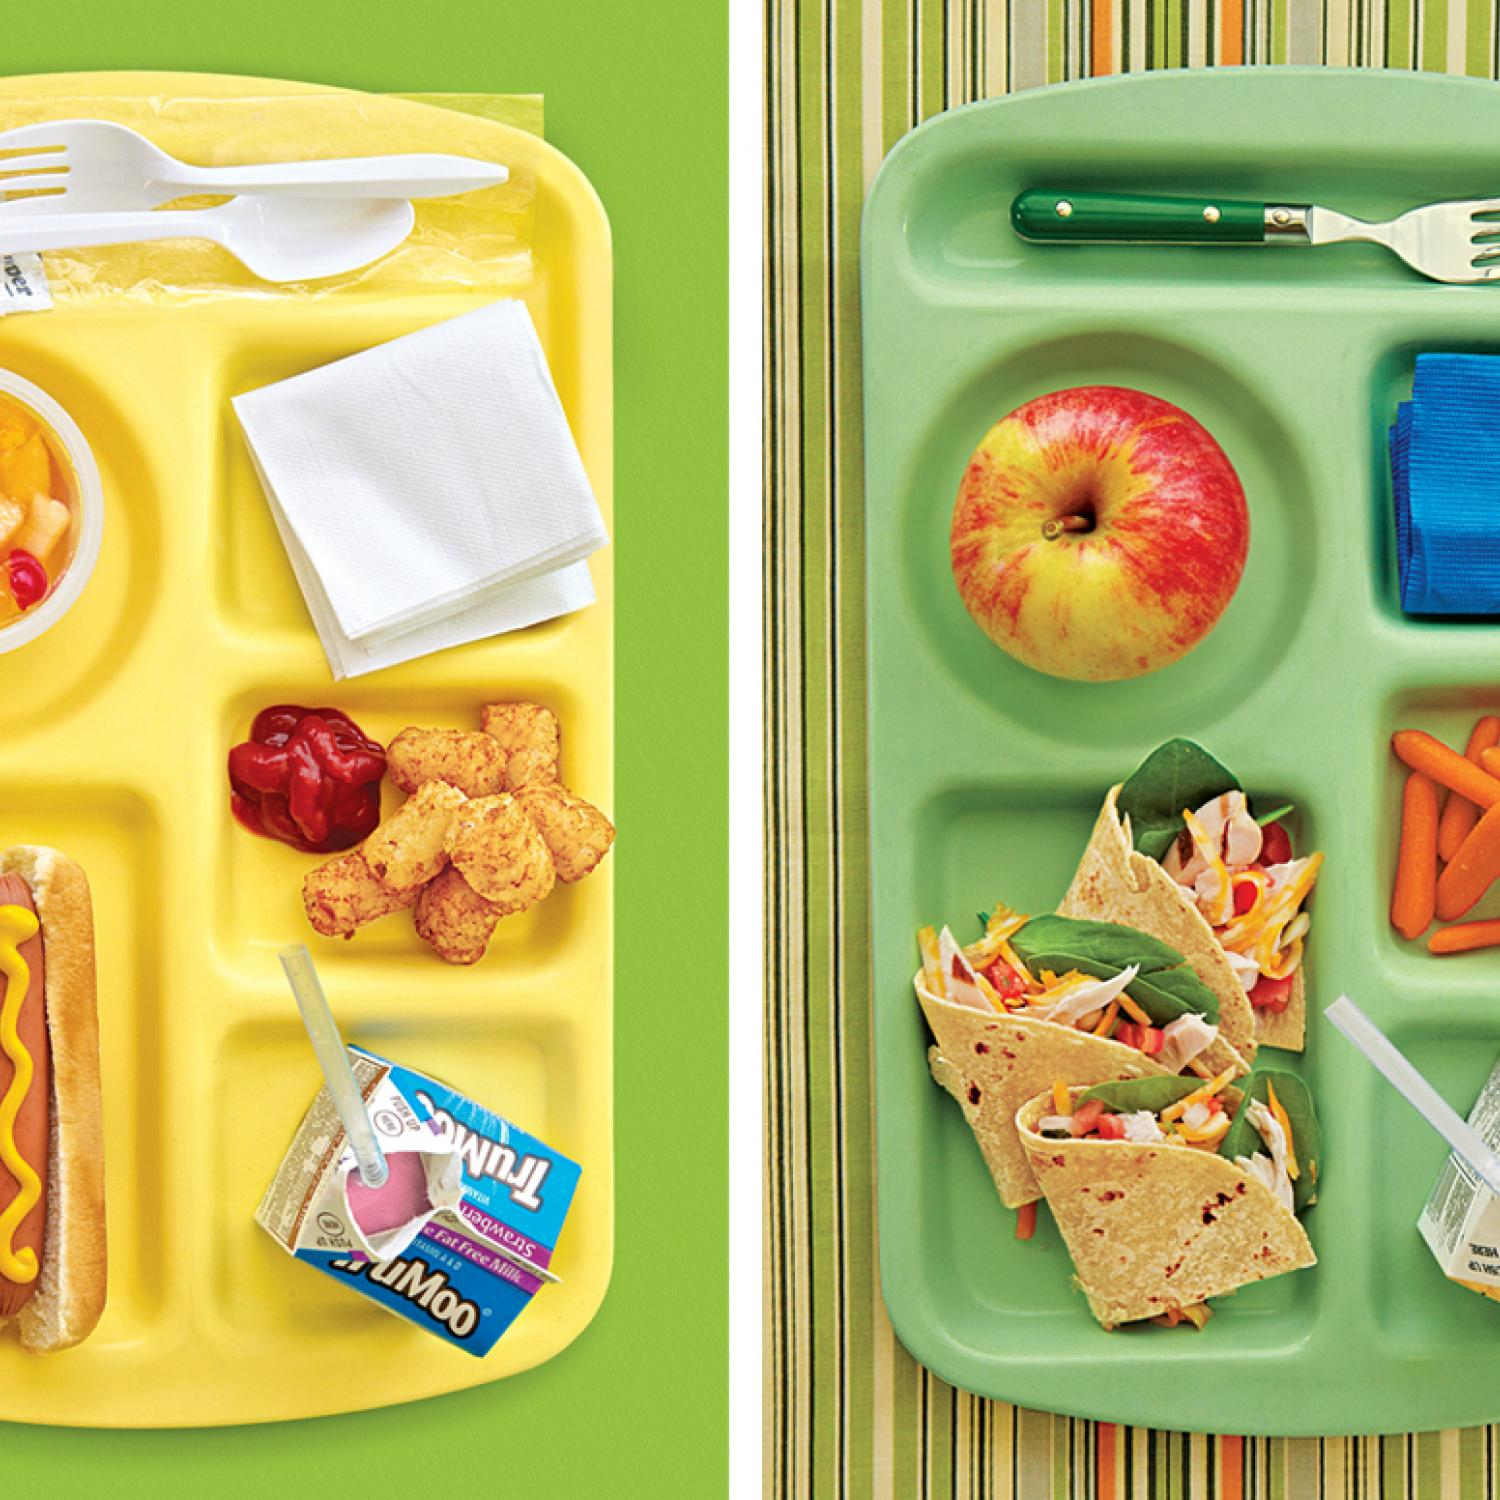 Mrs q on healthy school lunch ideas parenting forumfinder Images